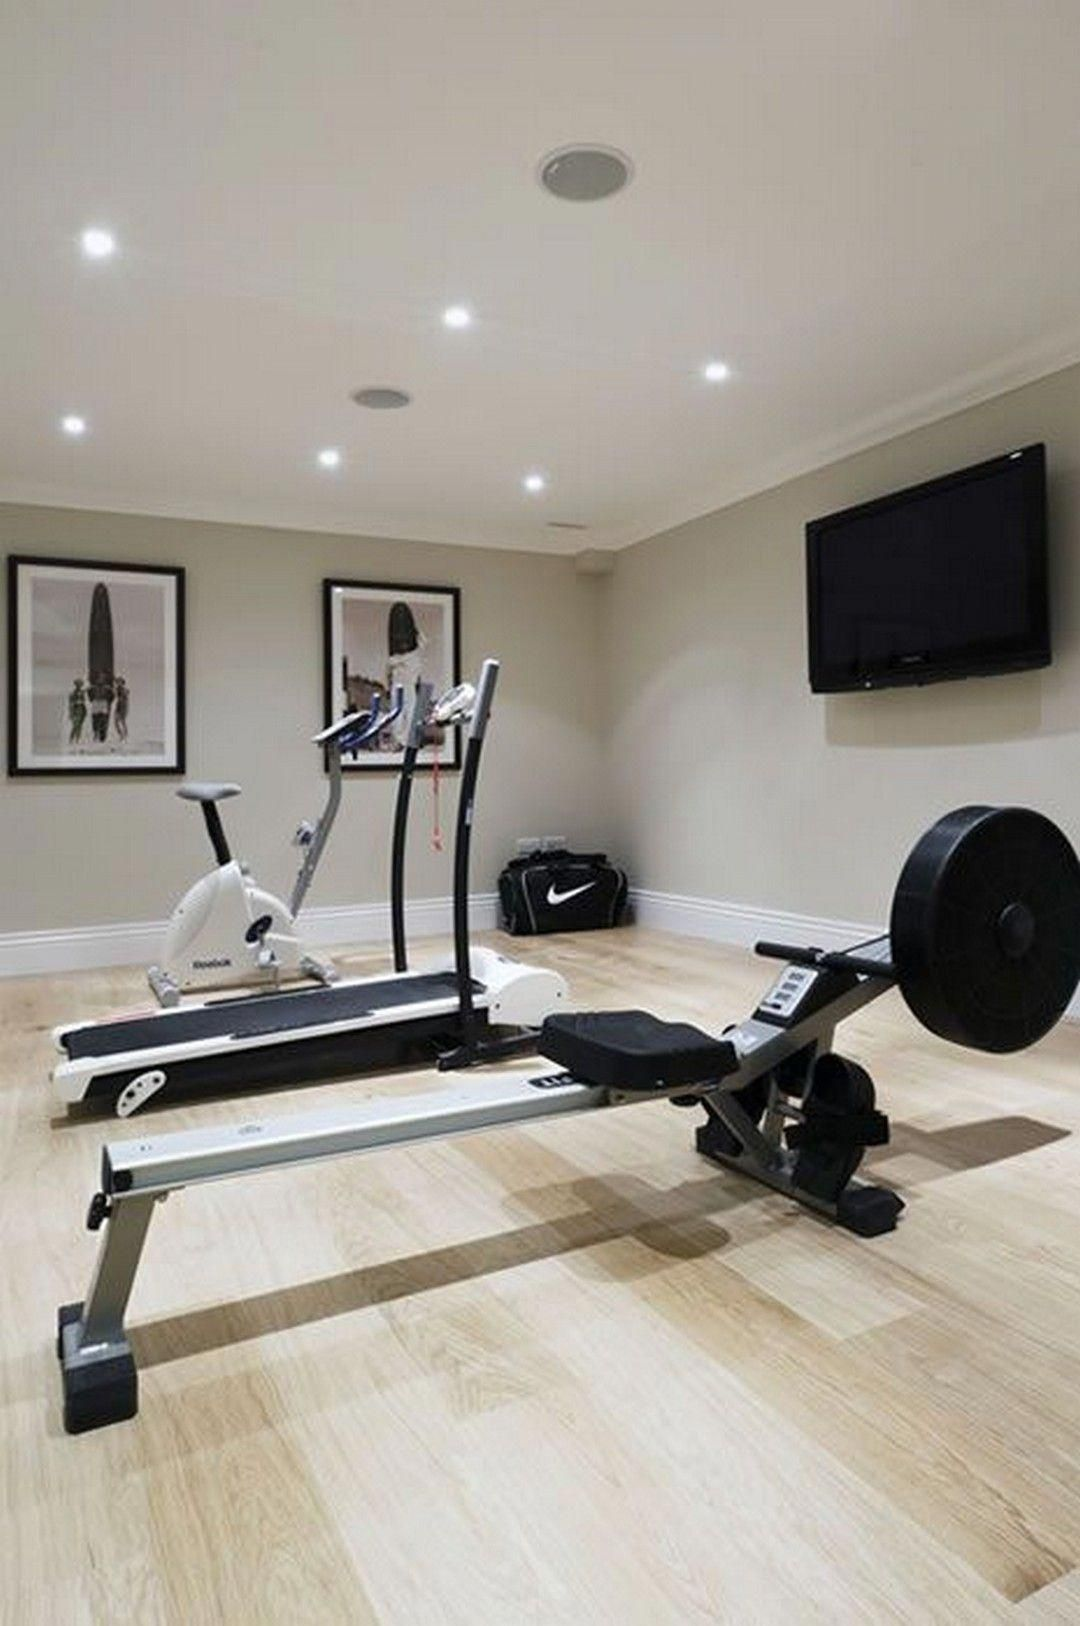 Best Basement Renovations Rustic Basement Decorating Ideas Basement Designs For Small Basements 20190506 Gym Room At Home Workout Room Home Home Gym Decor